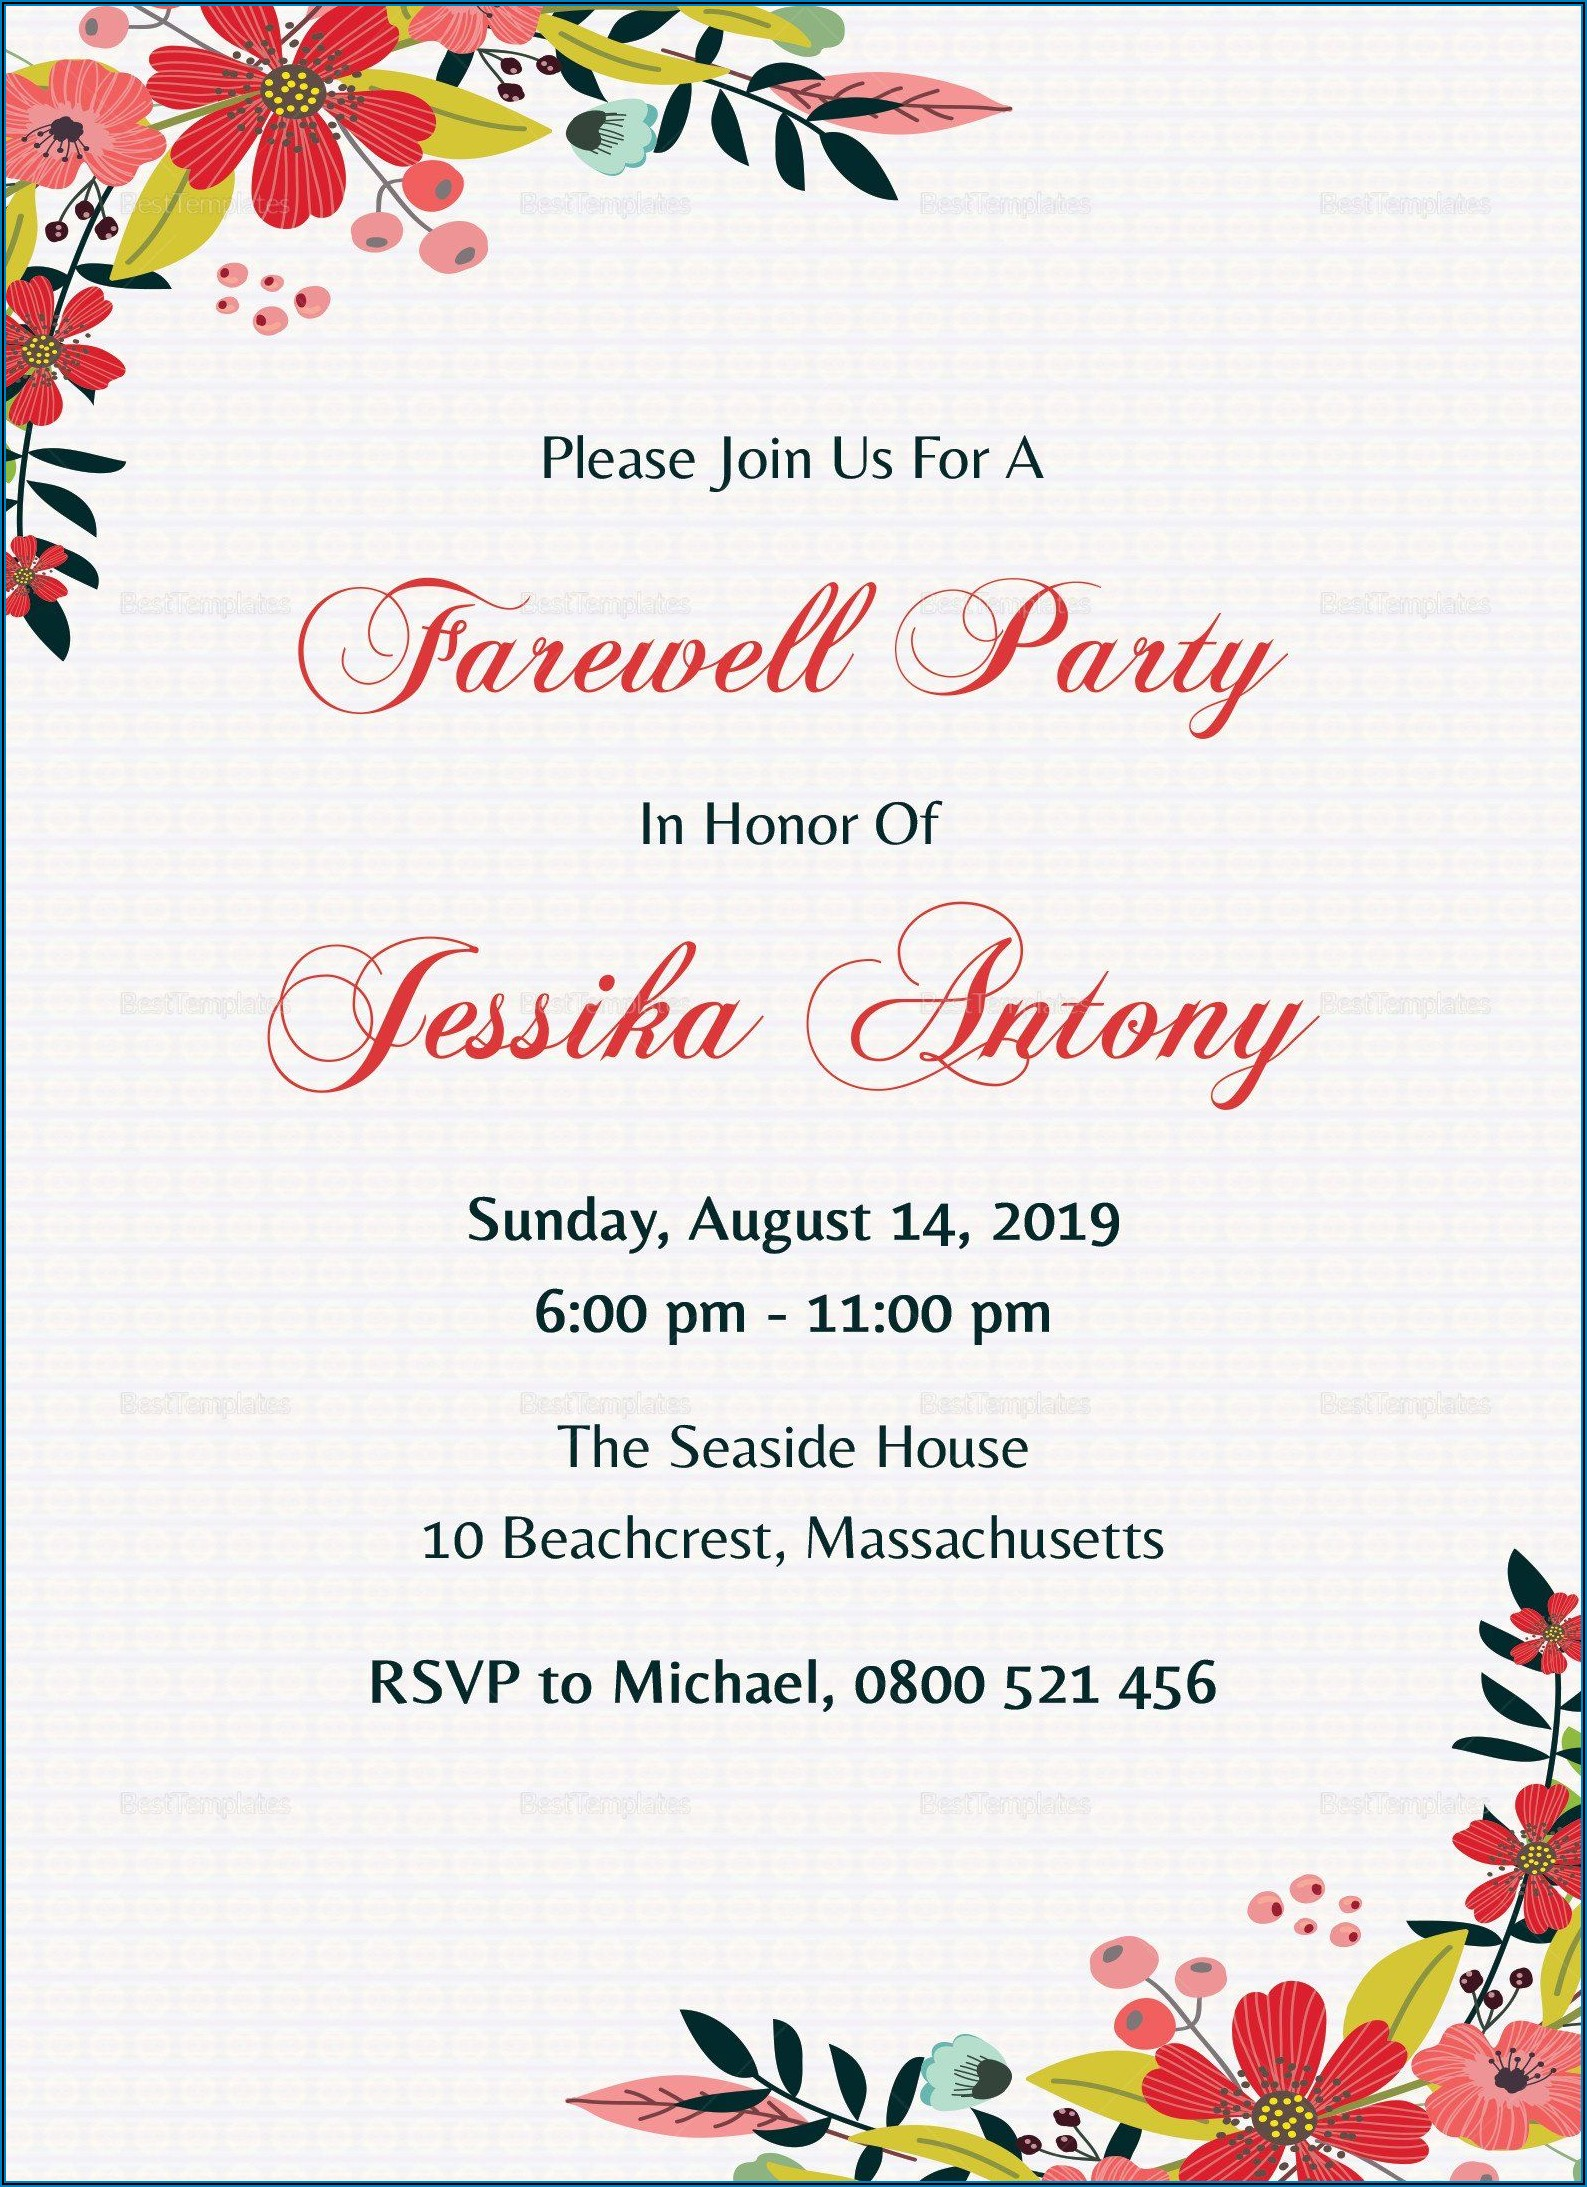 Goodbye Party Invitation Template Free